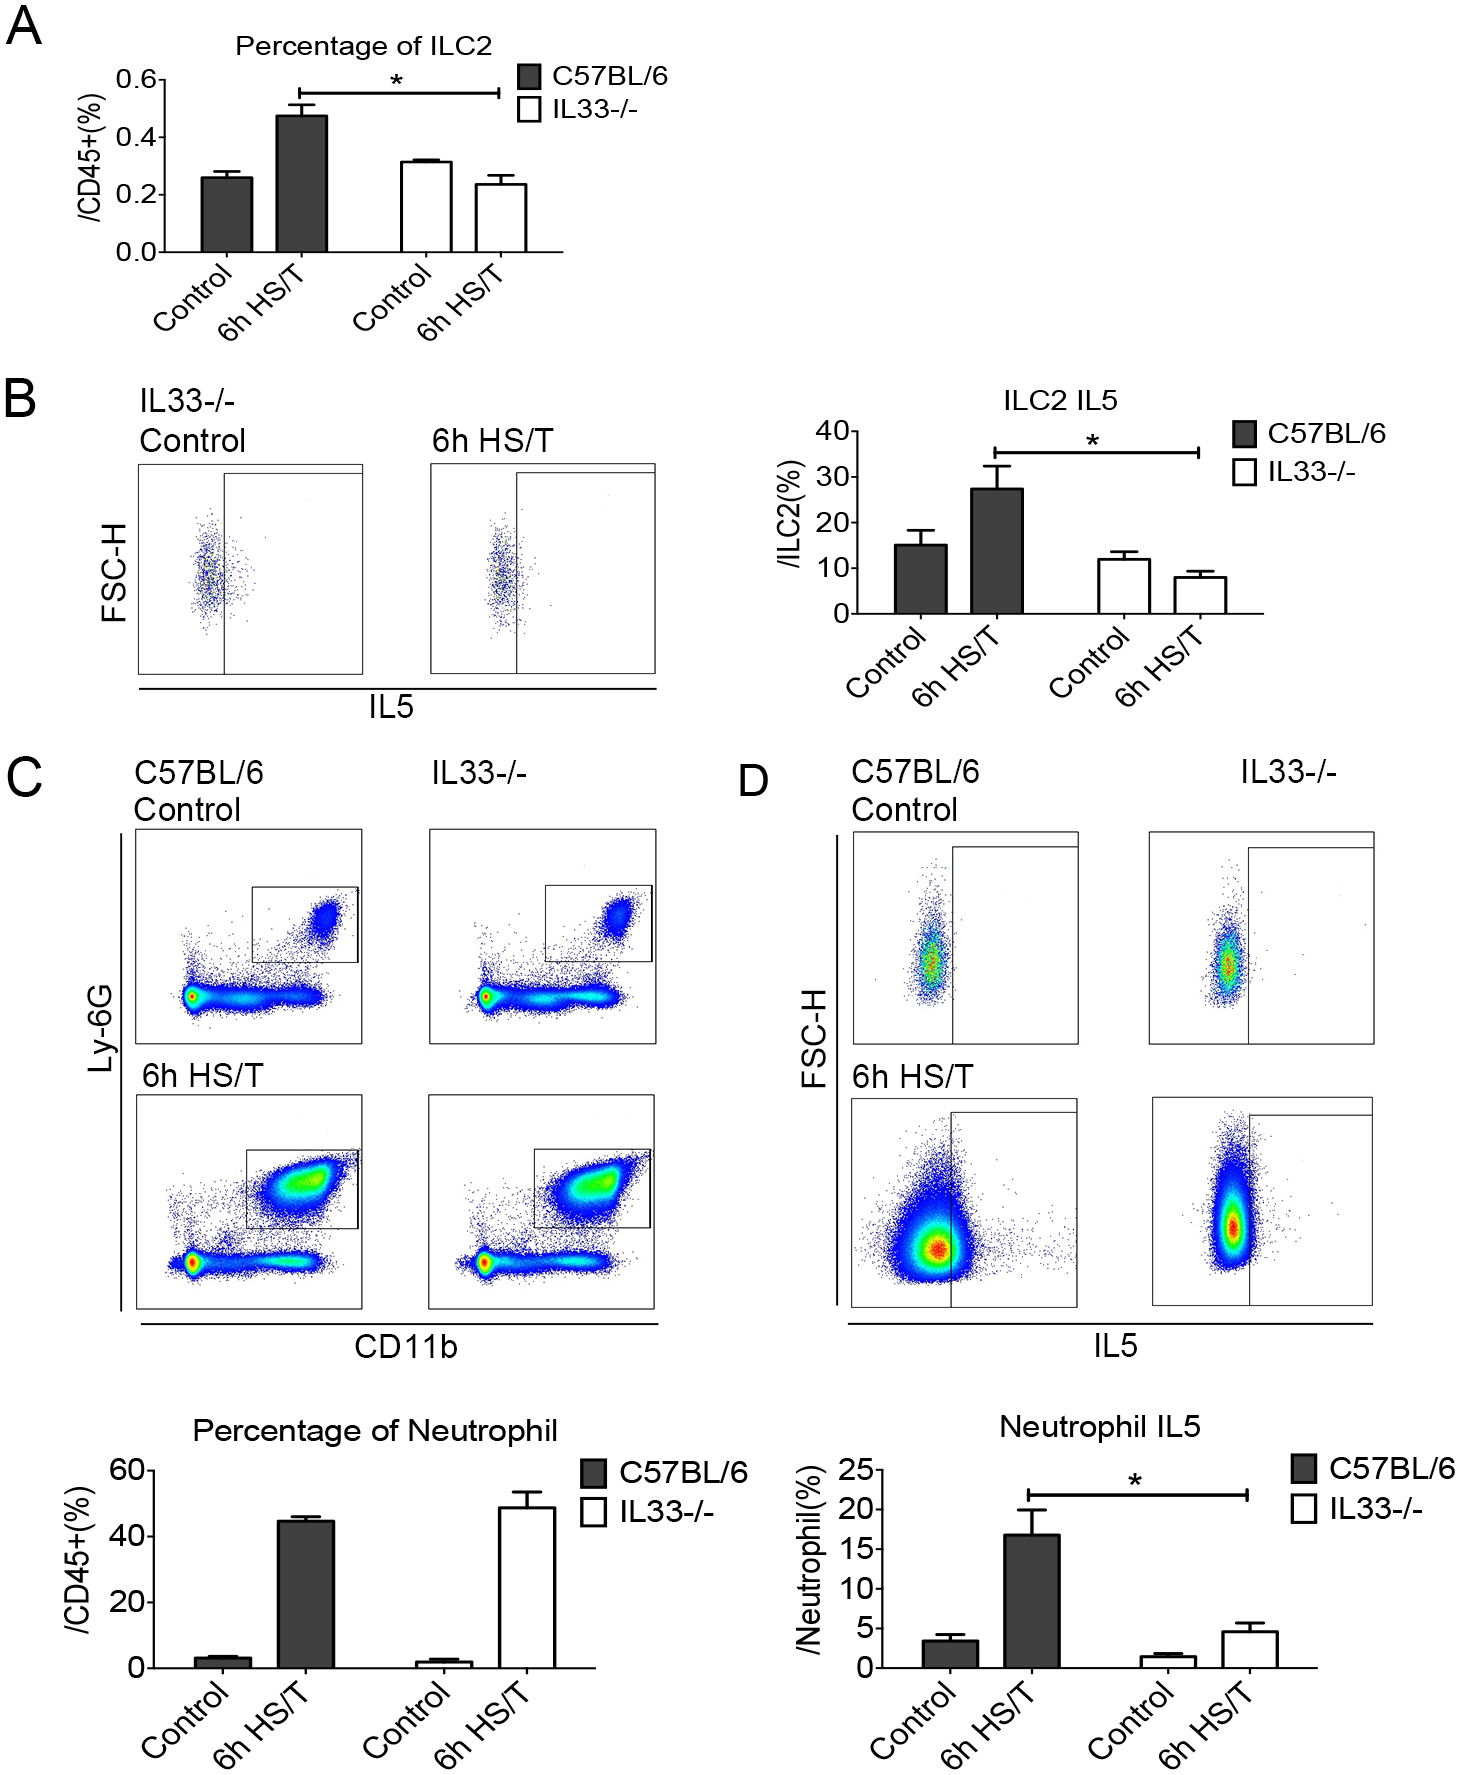 Effects of interleukin (IL) 33 deletion on group 2 innate lymphoid cells (ILC2) and neutrophil responses in lungs after resuscitated hemorrhagic shock and tissue trauma (HS/T).